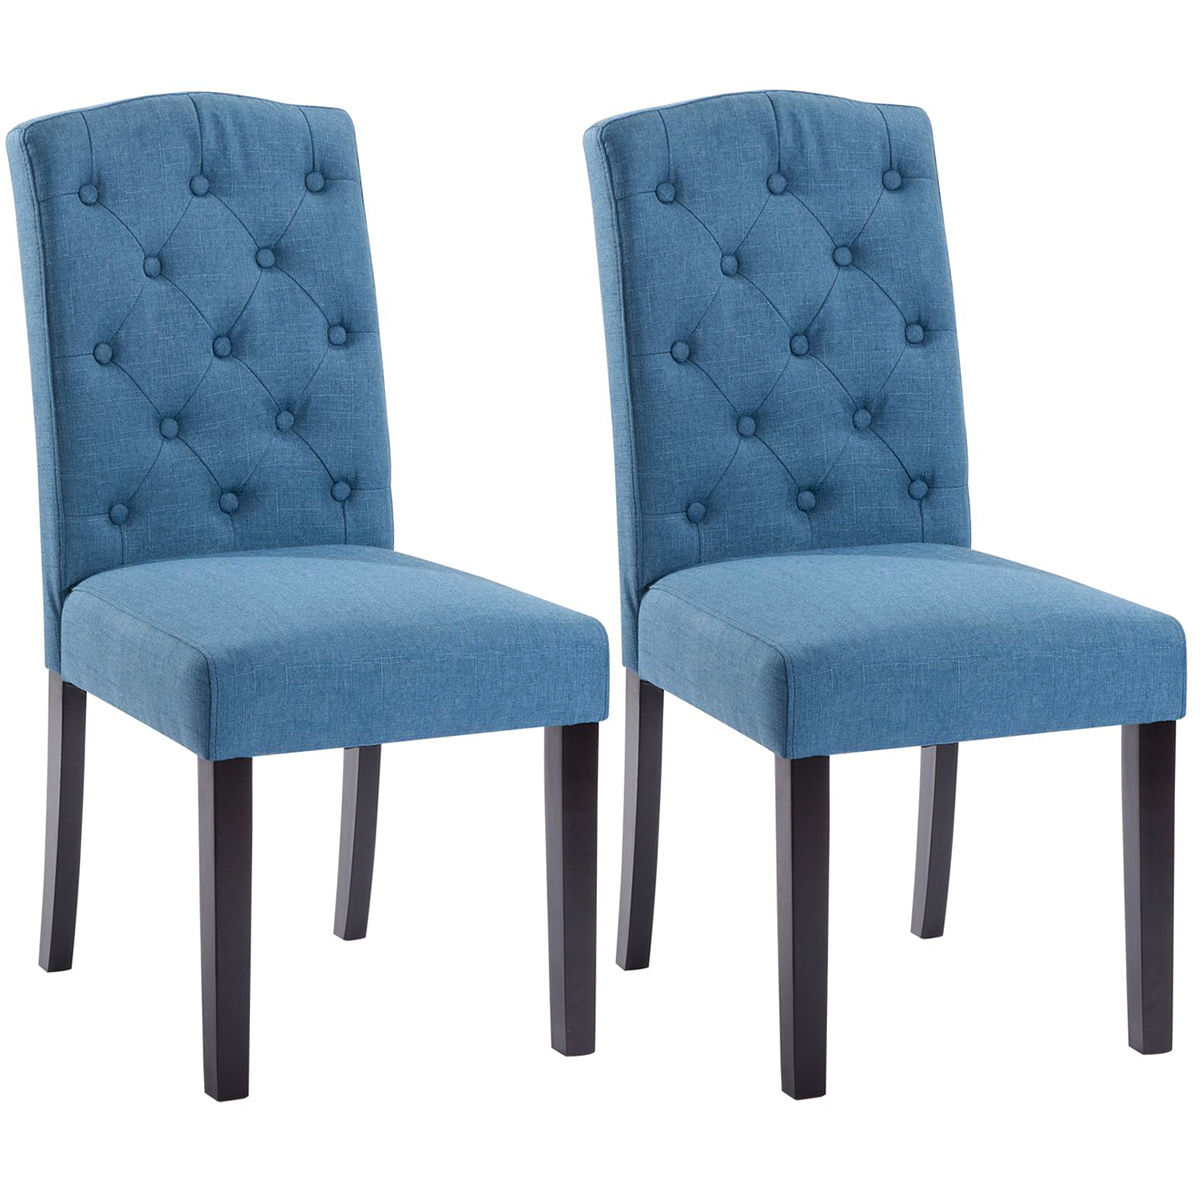 Costway Set of 2 Linen Fabric Wood Accent Dining Chair Tufted Modern Living Room Blue